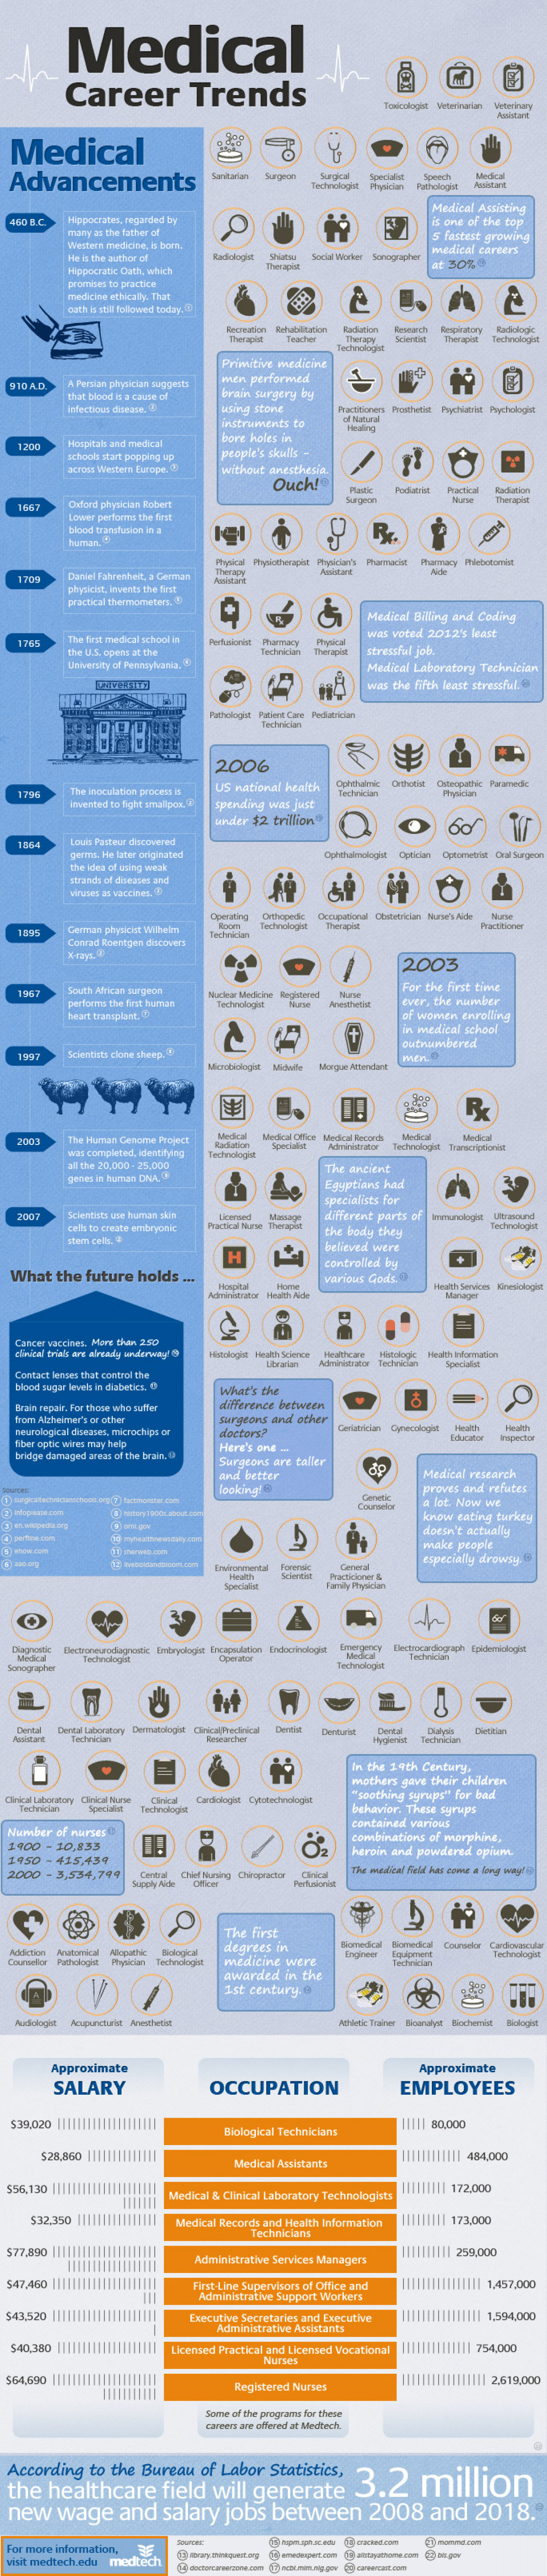 How Medical Advancements Changed Career Trends Infographic